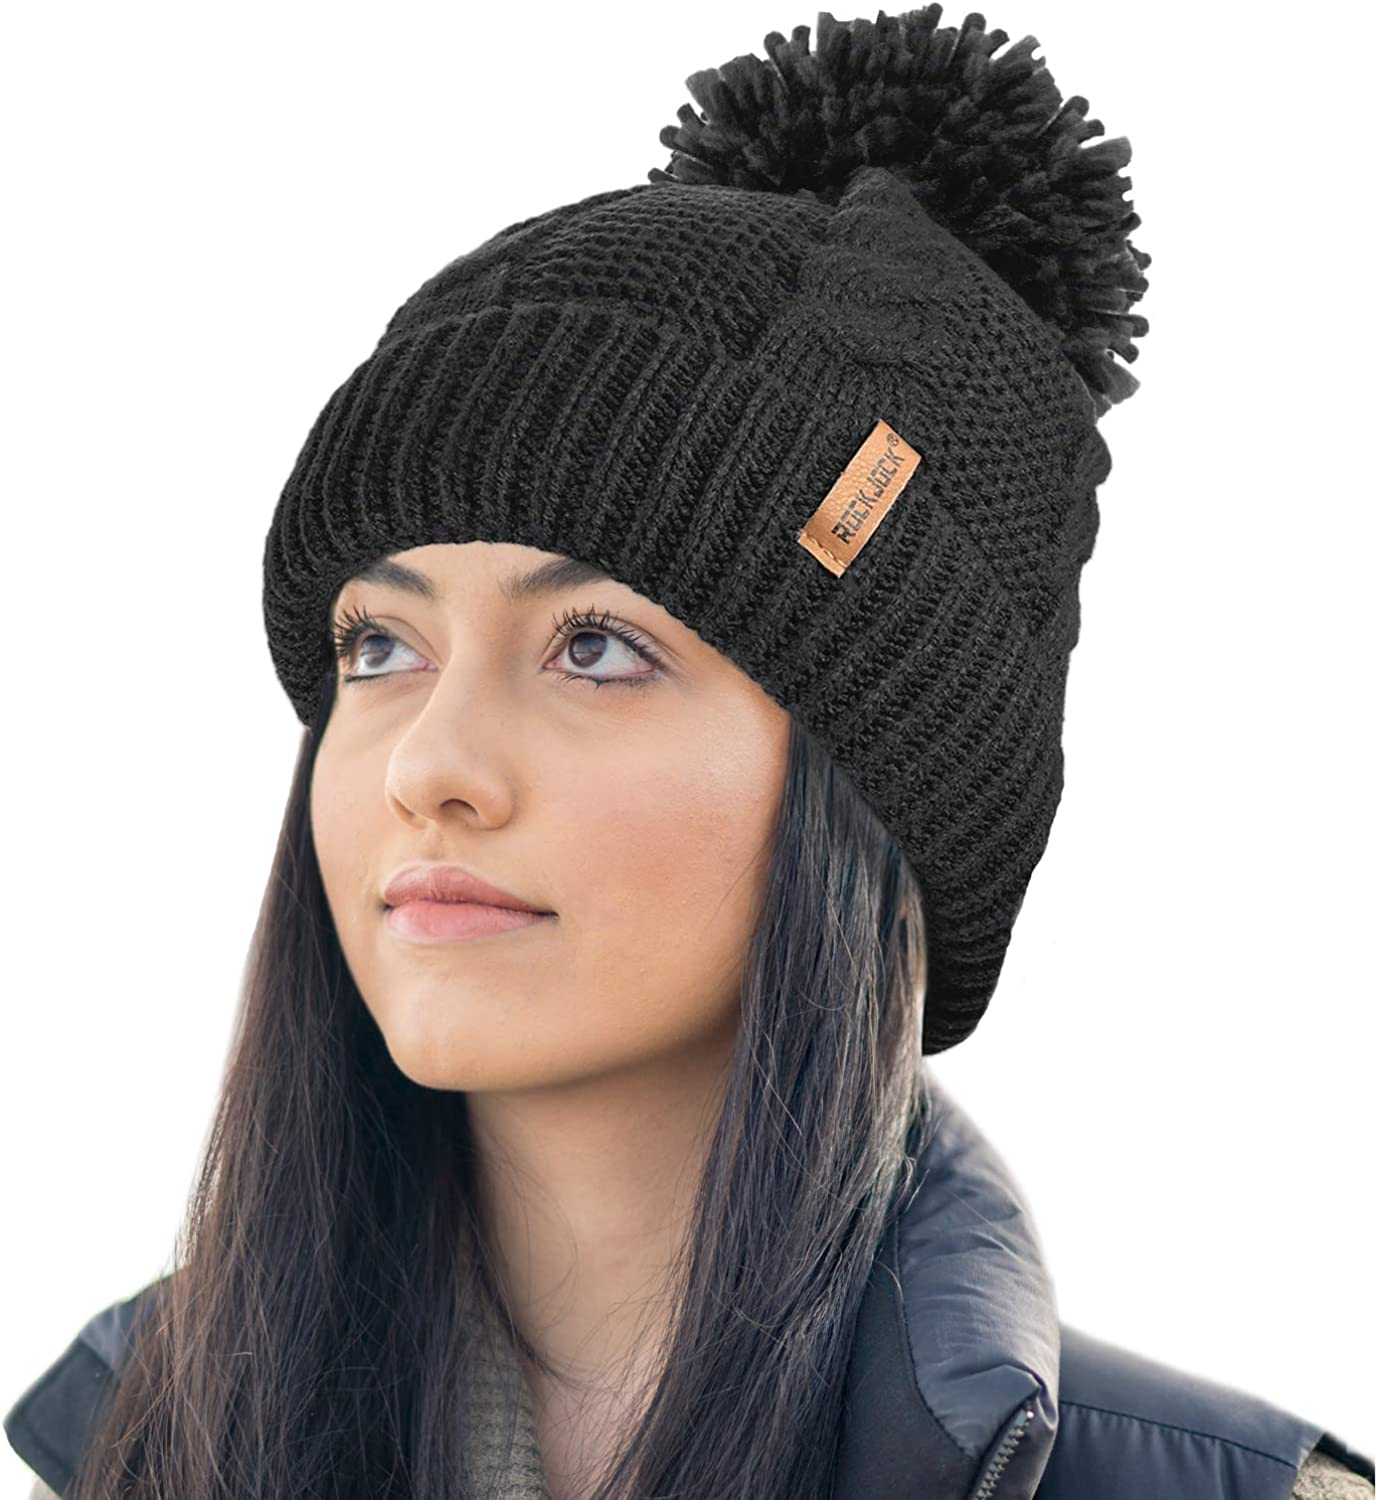 RockJock Ladies STORMACTIVE 100/% Waterproof Warm Cable Knit winter hat with pompom and thermal cosy liner